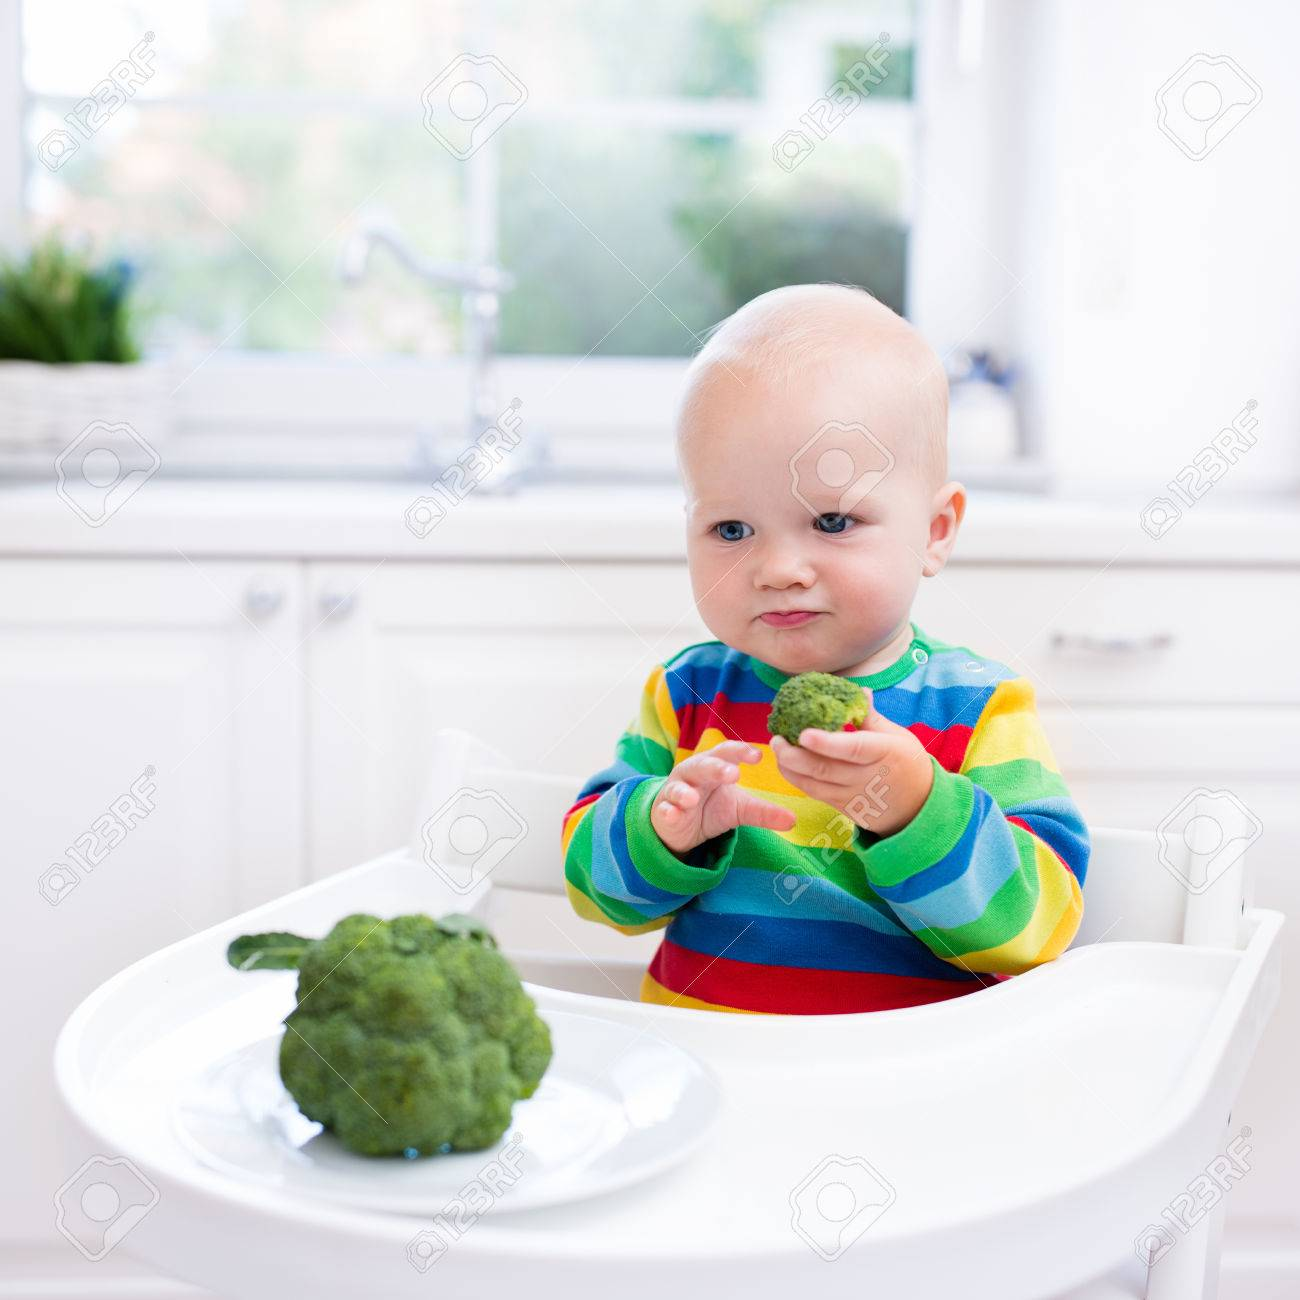 Happy Baby Sitting In High Chair Eating Broccoli In A White